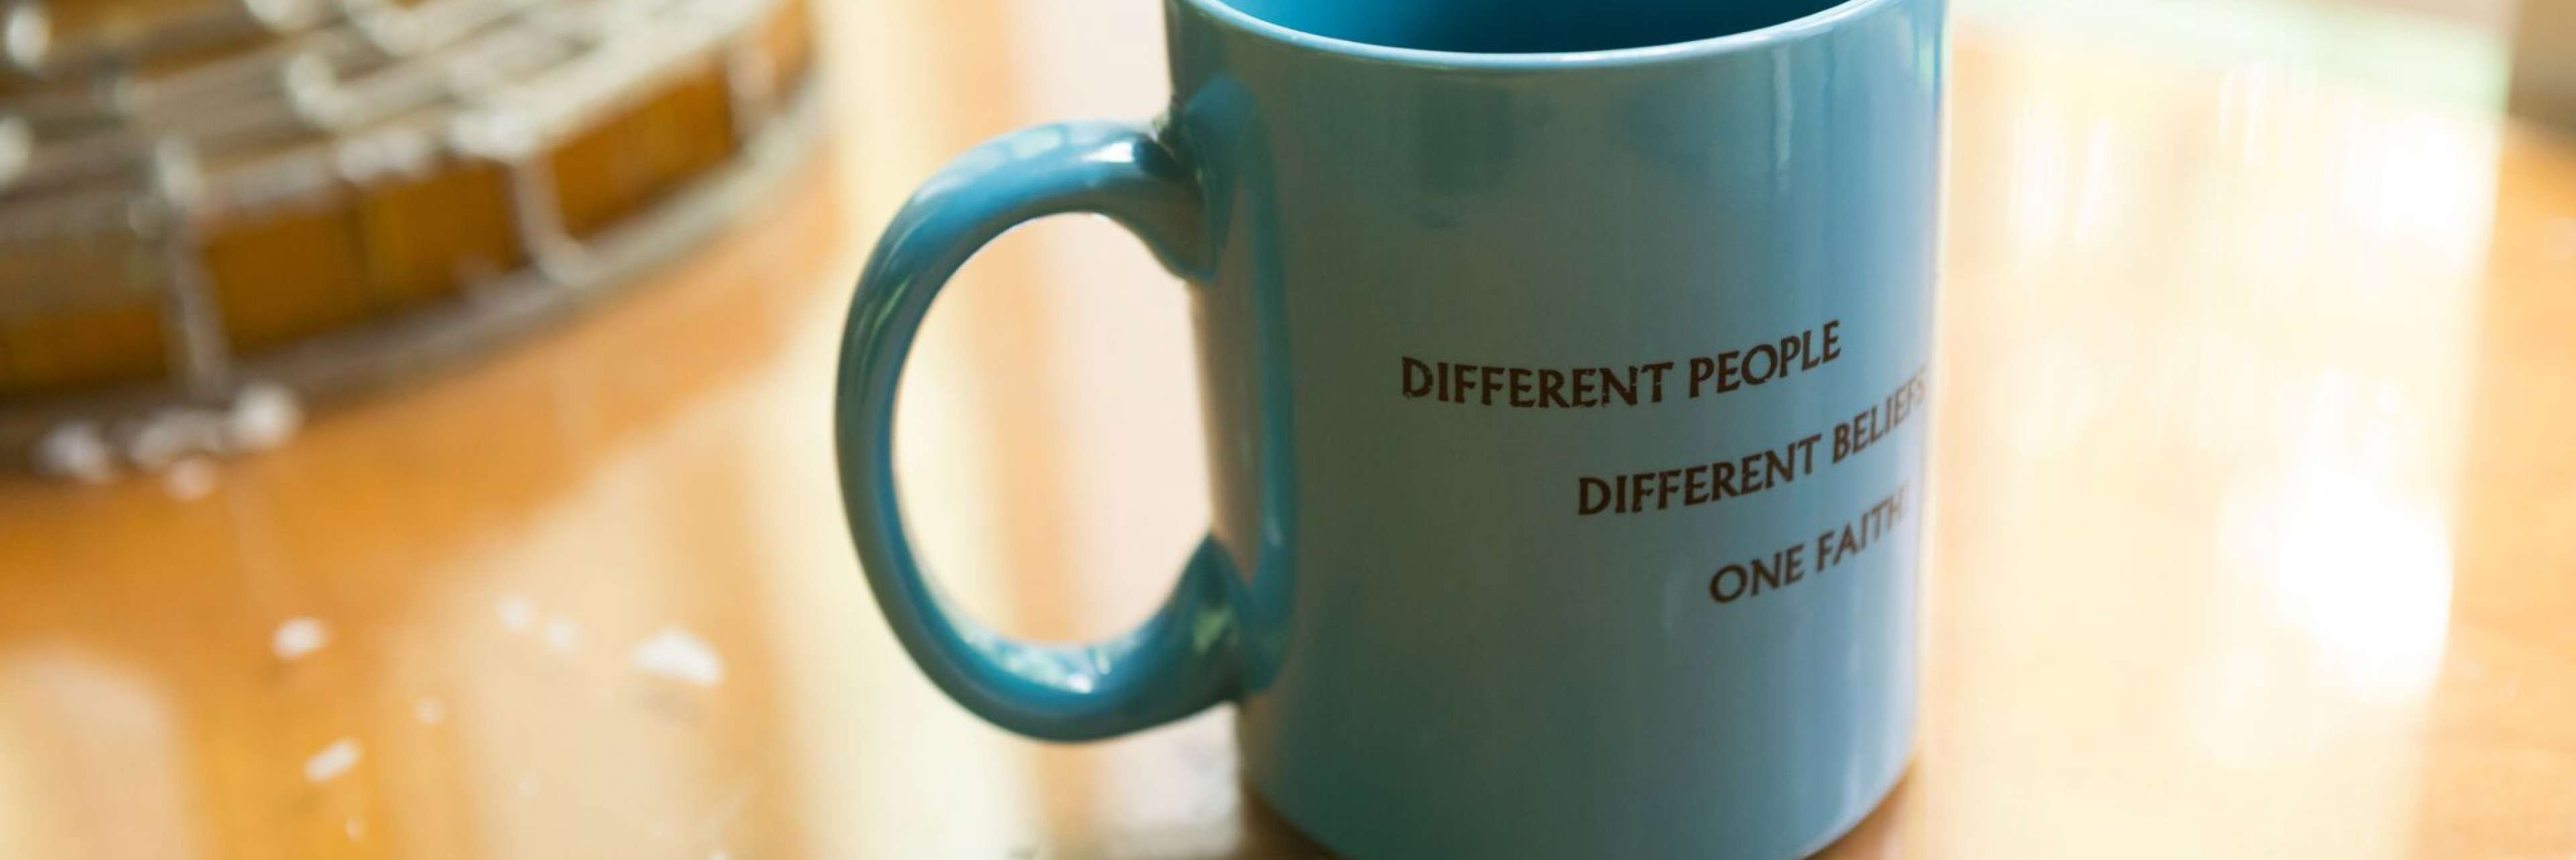 "coffee mug on a table that says ""different people, different beliefs, one faith"""